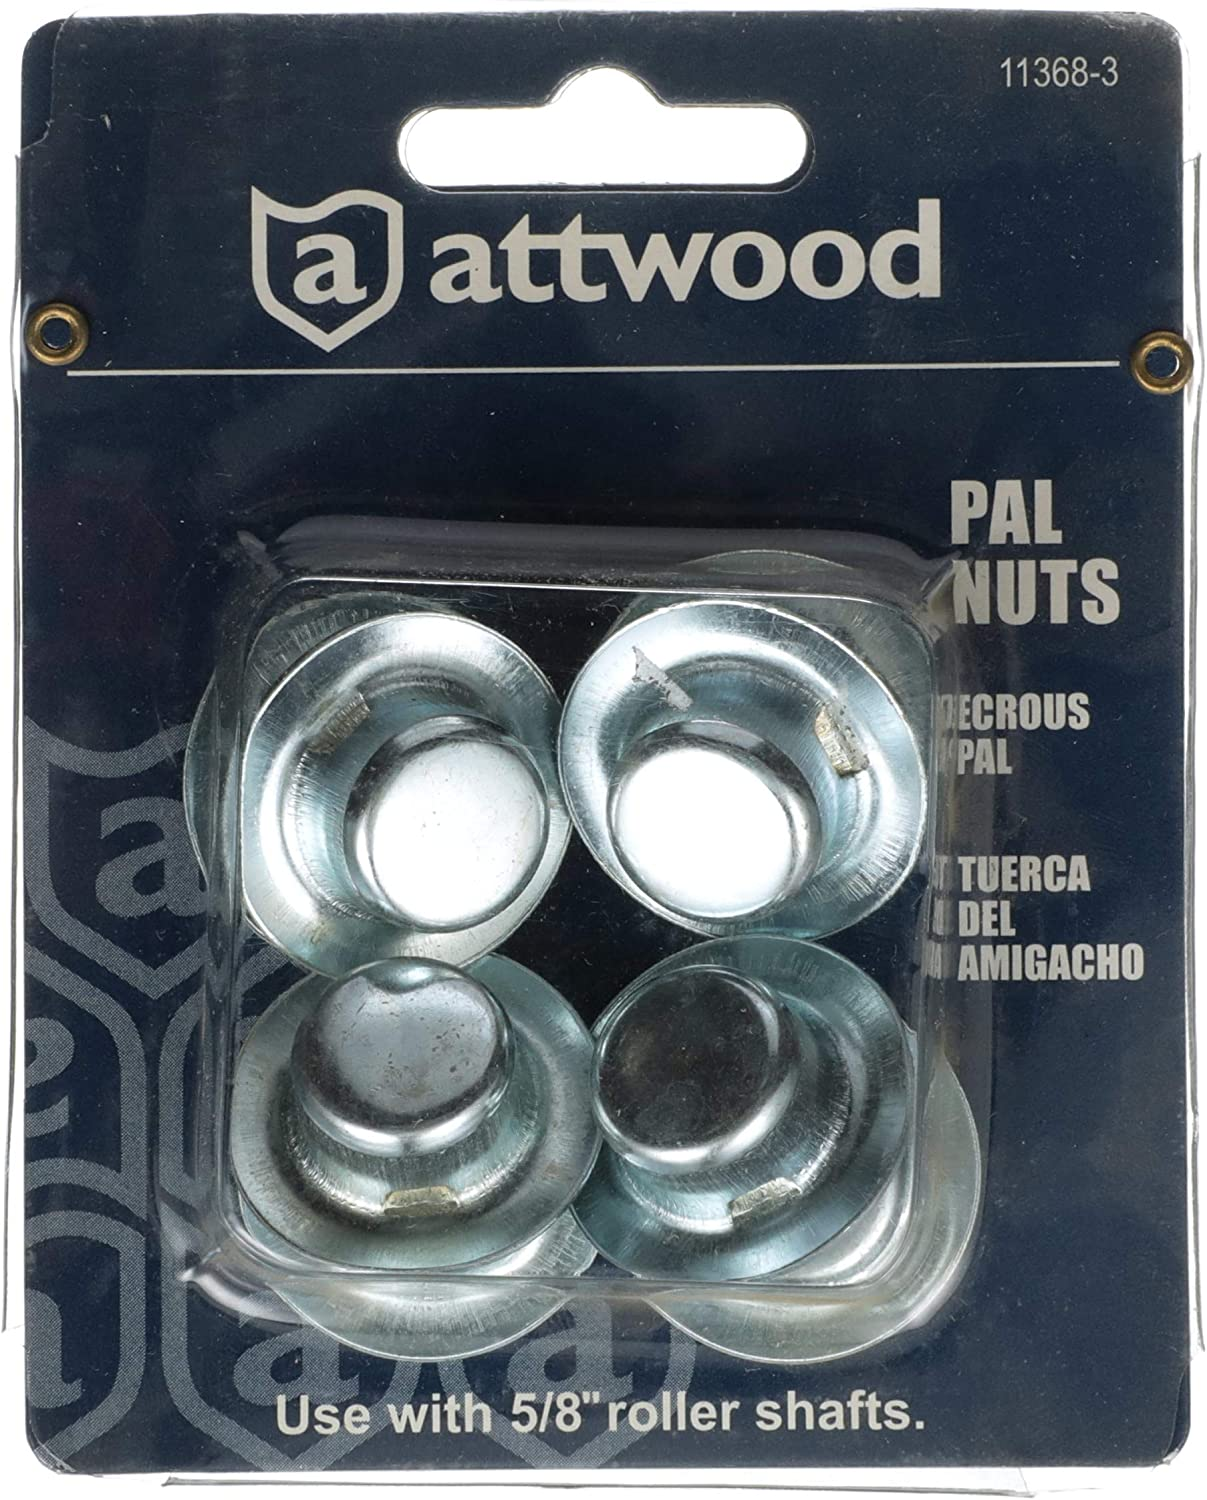 Diameter Roller Shafts attwood 11368-3 Pal Nuts /— Zinc-Plated Steel /— for 5//8-In Set of 8 Nuts